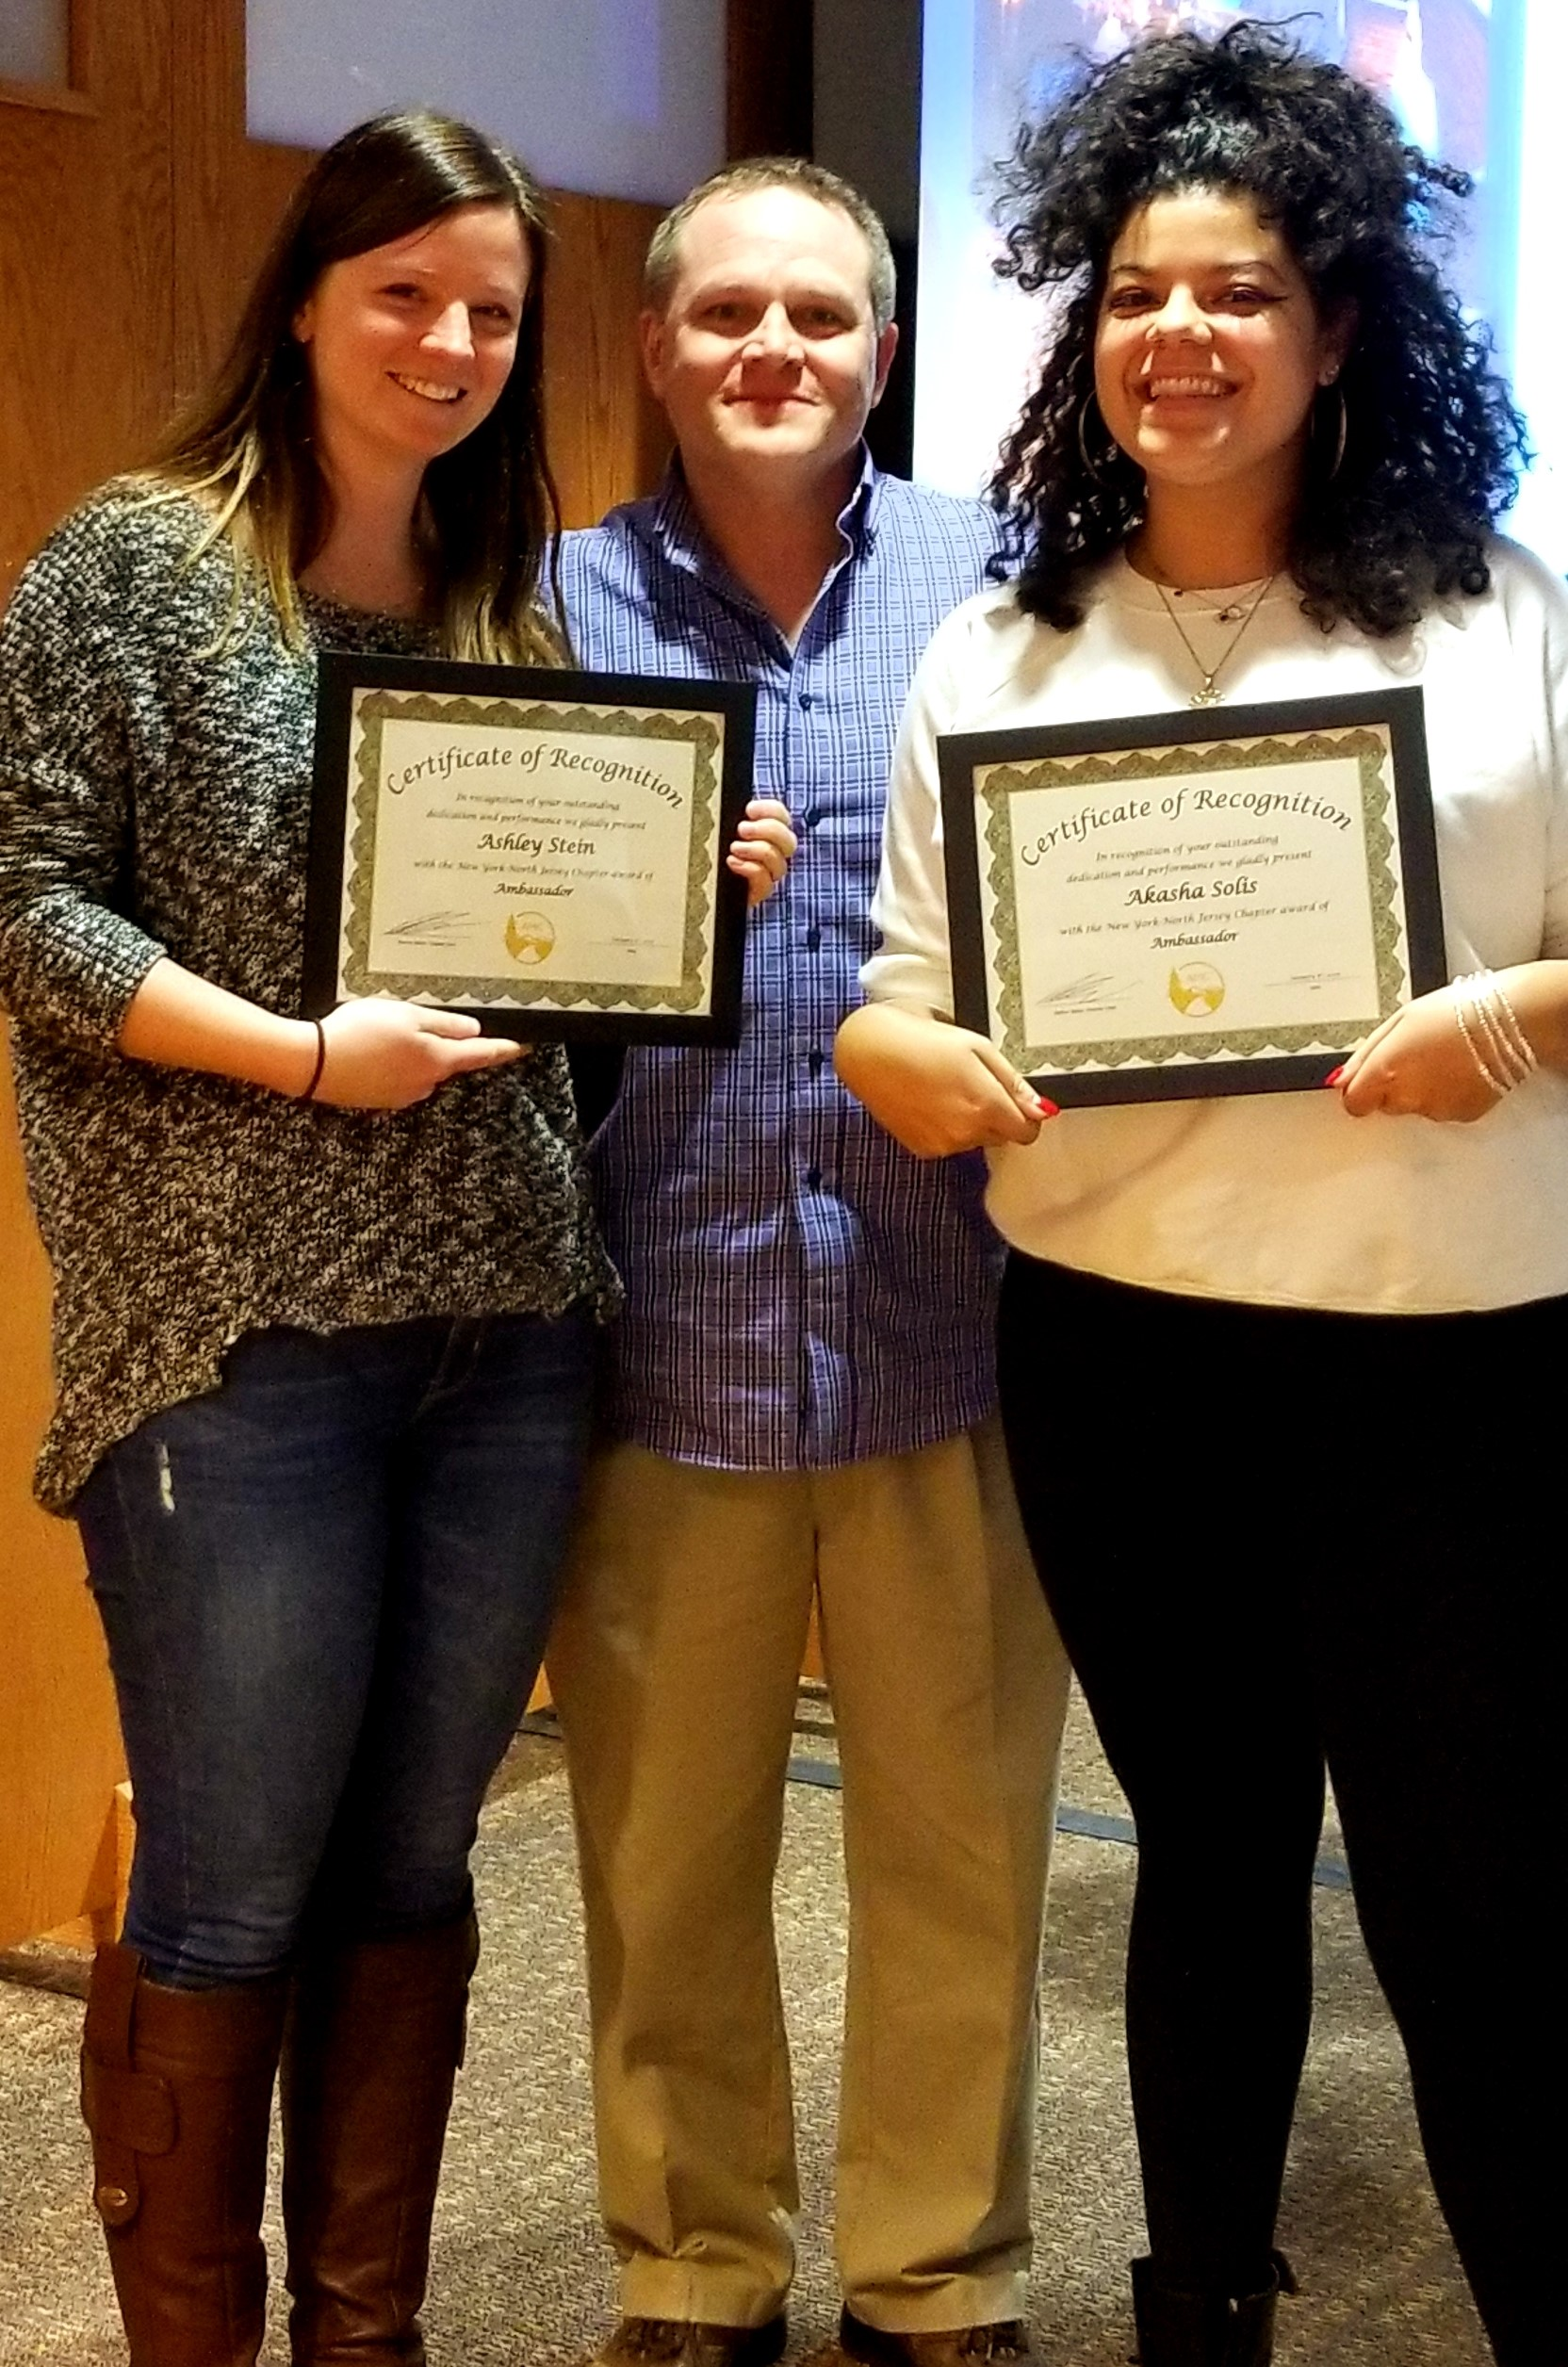 CCNY alumni Ashley Stein (left) and Akasha Solis (right) celebrate their recognition with Nathan Baker, AMC NY/No-J Chapter Chair